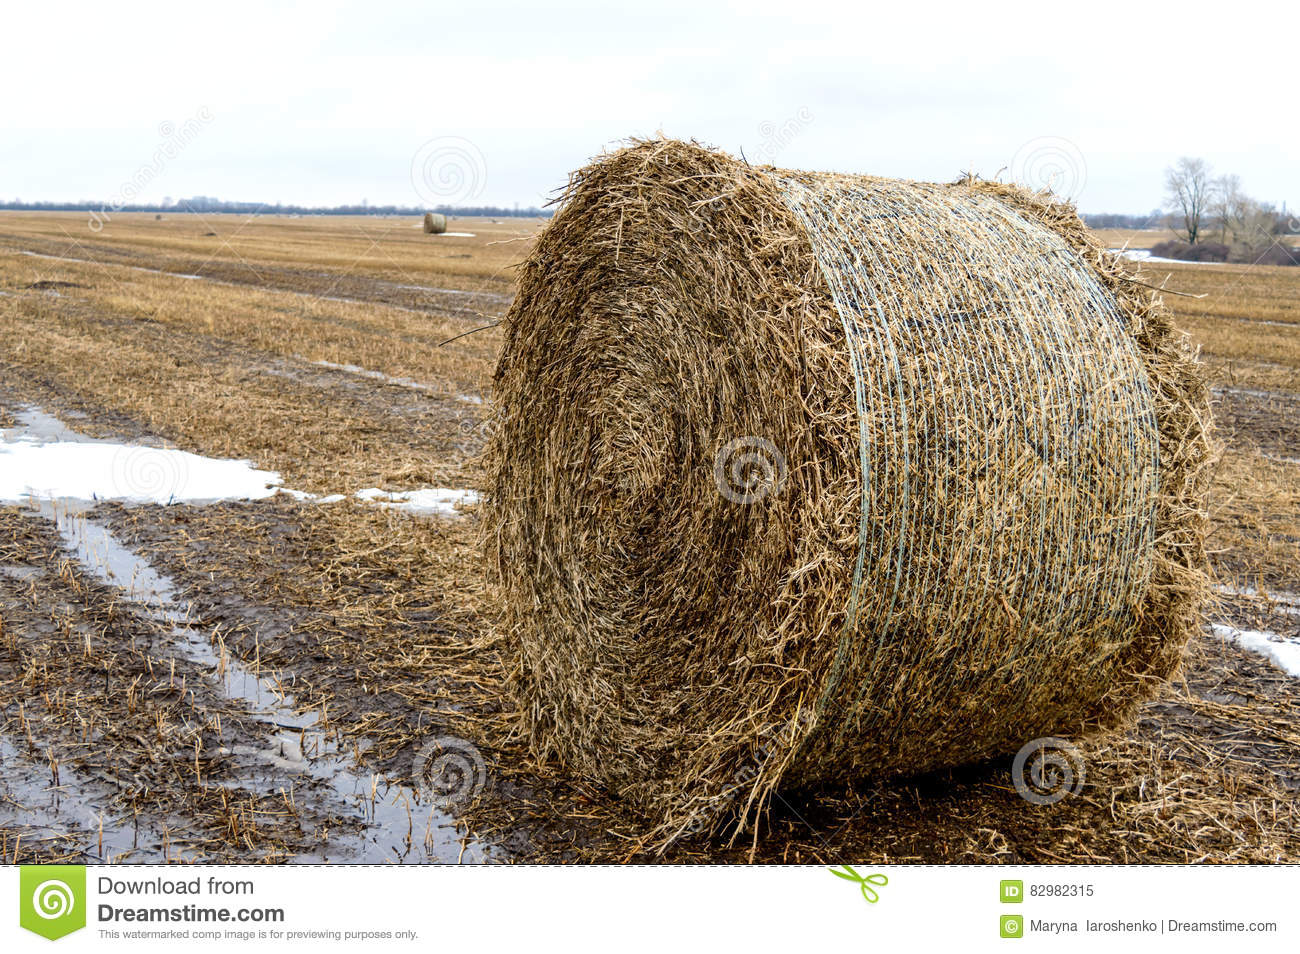 The straw left on the field after the grain harvest, the formation of the dense rolls for use as a fuel, the production of pellets